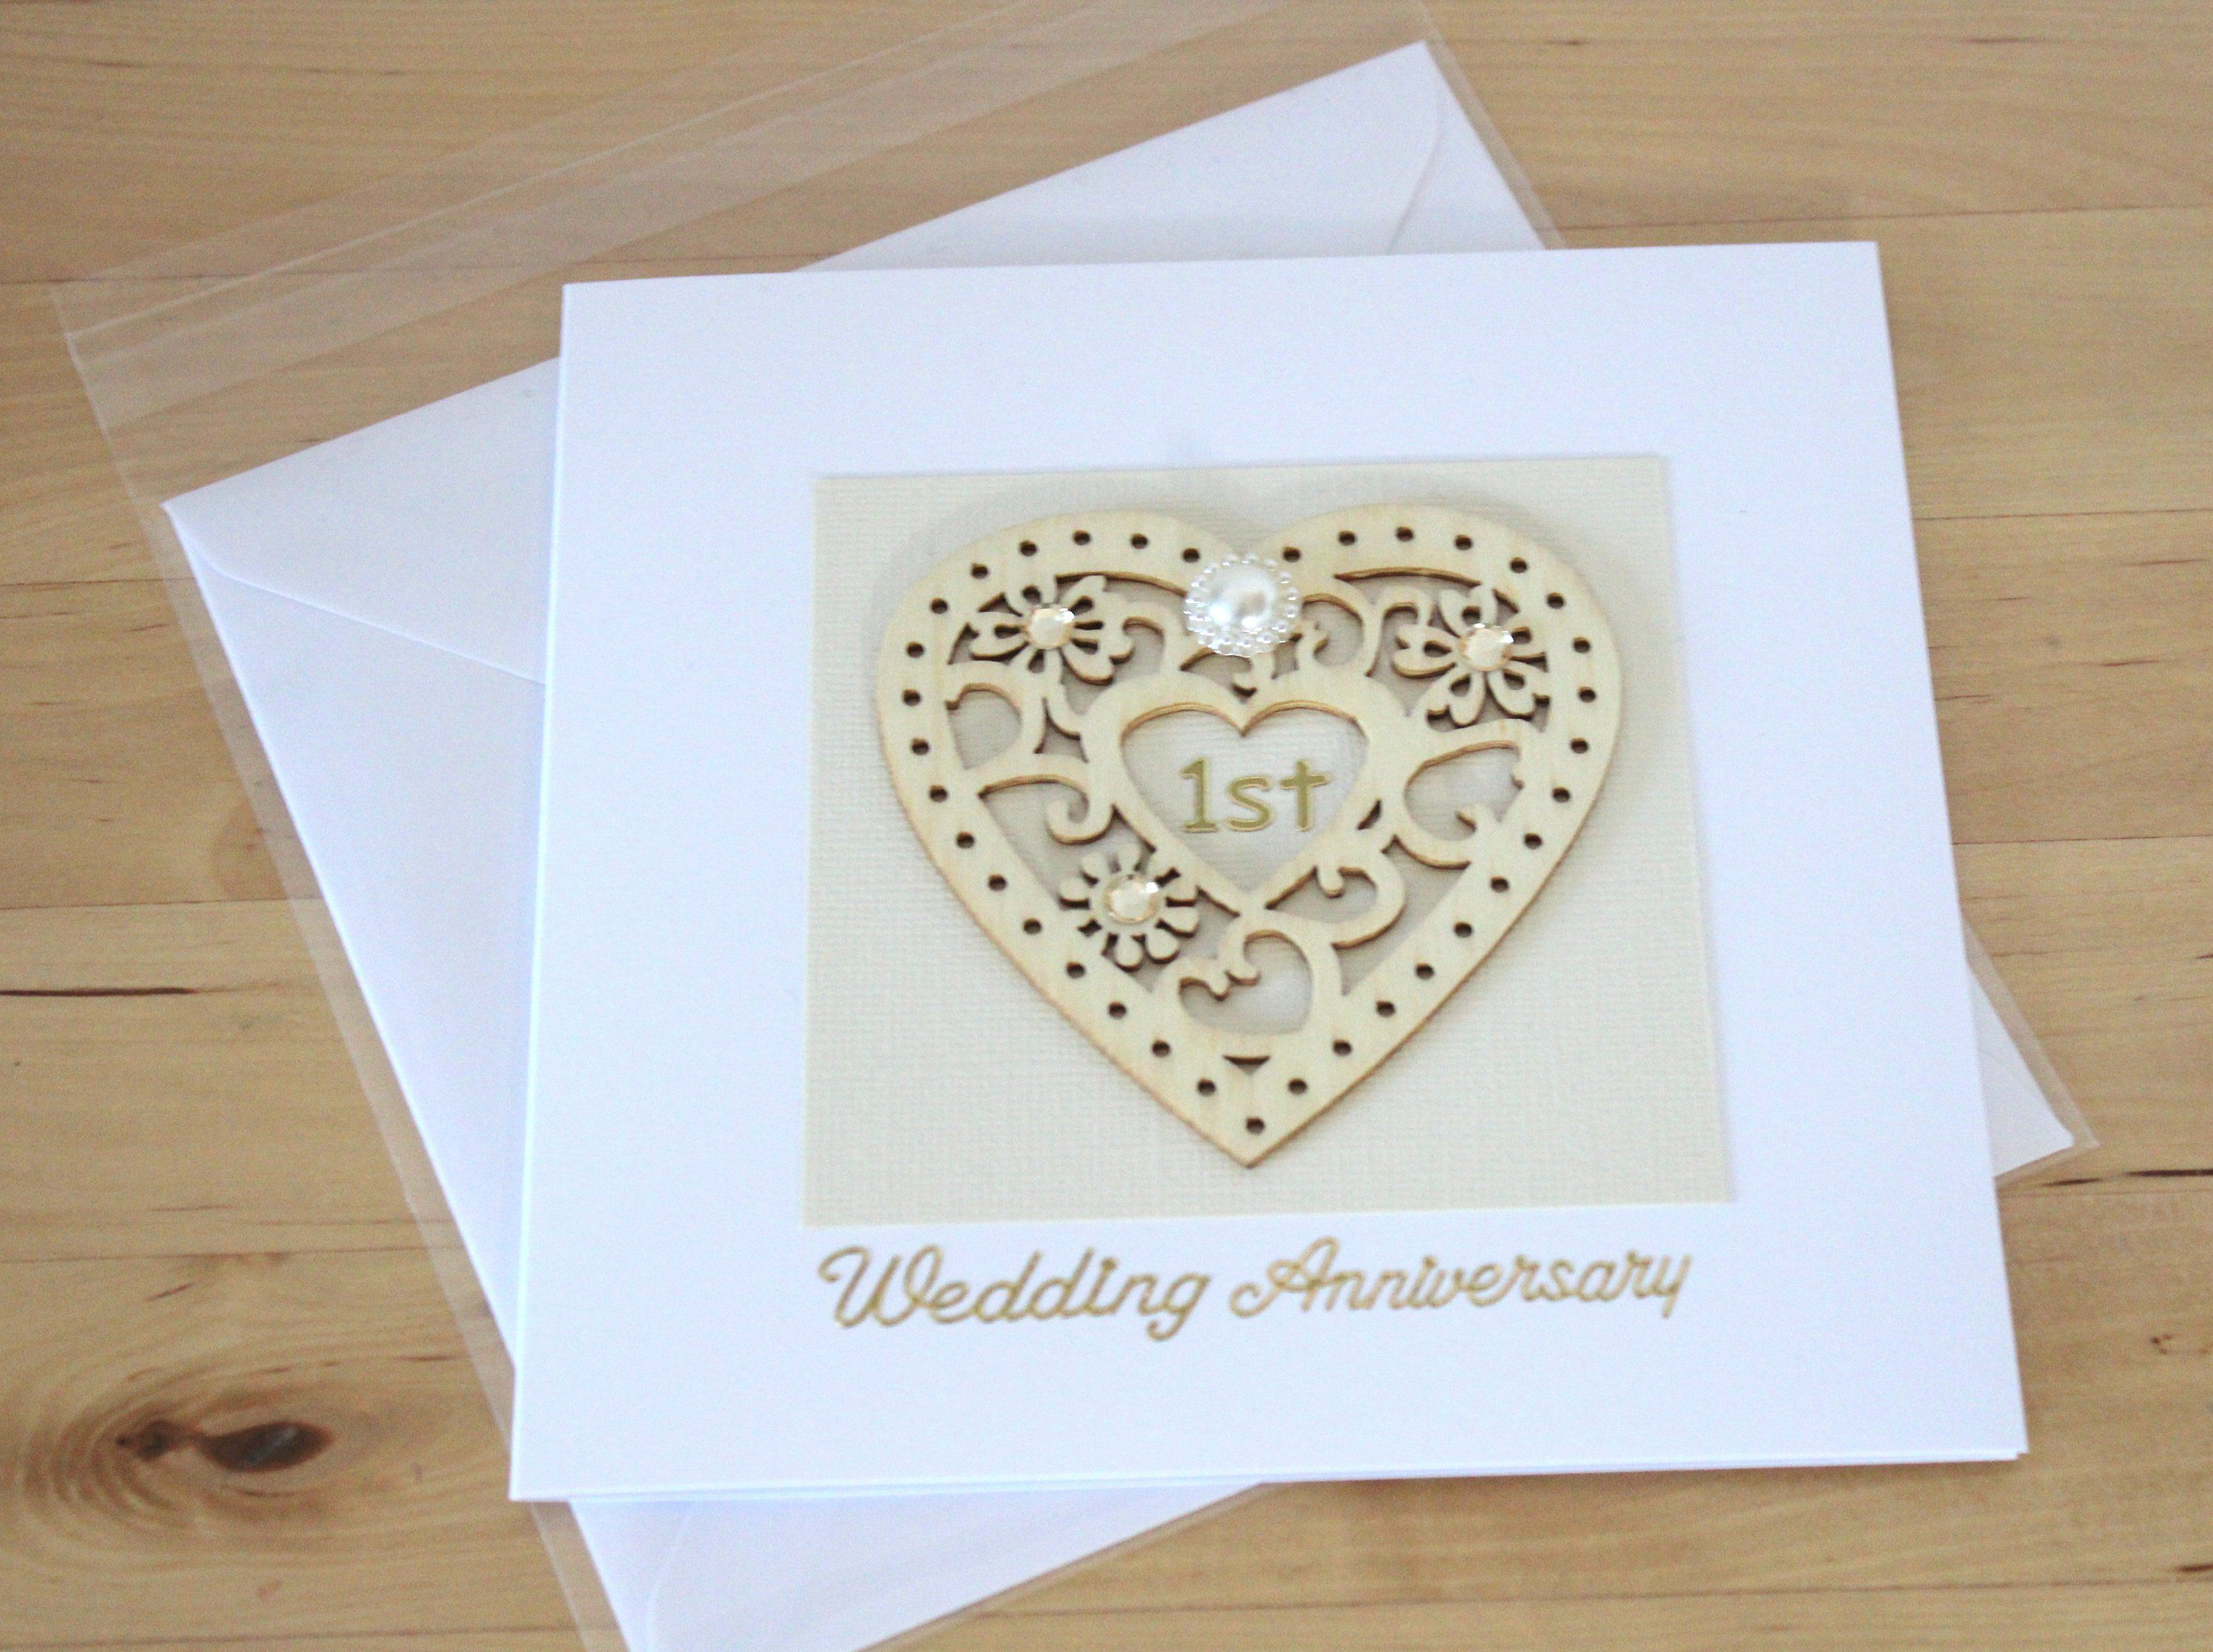 First Wedding Anniversary Card Gift For Husband Wife Luxury First 1st Wedding Anniversary Card Wooden First 1st Wedding Anniversary Card 1st Wedding Anniversary 3rd Wedding Anniversary First Wedding Anniversary